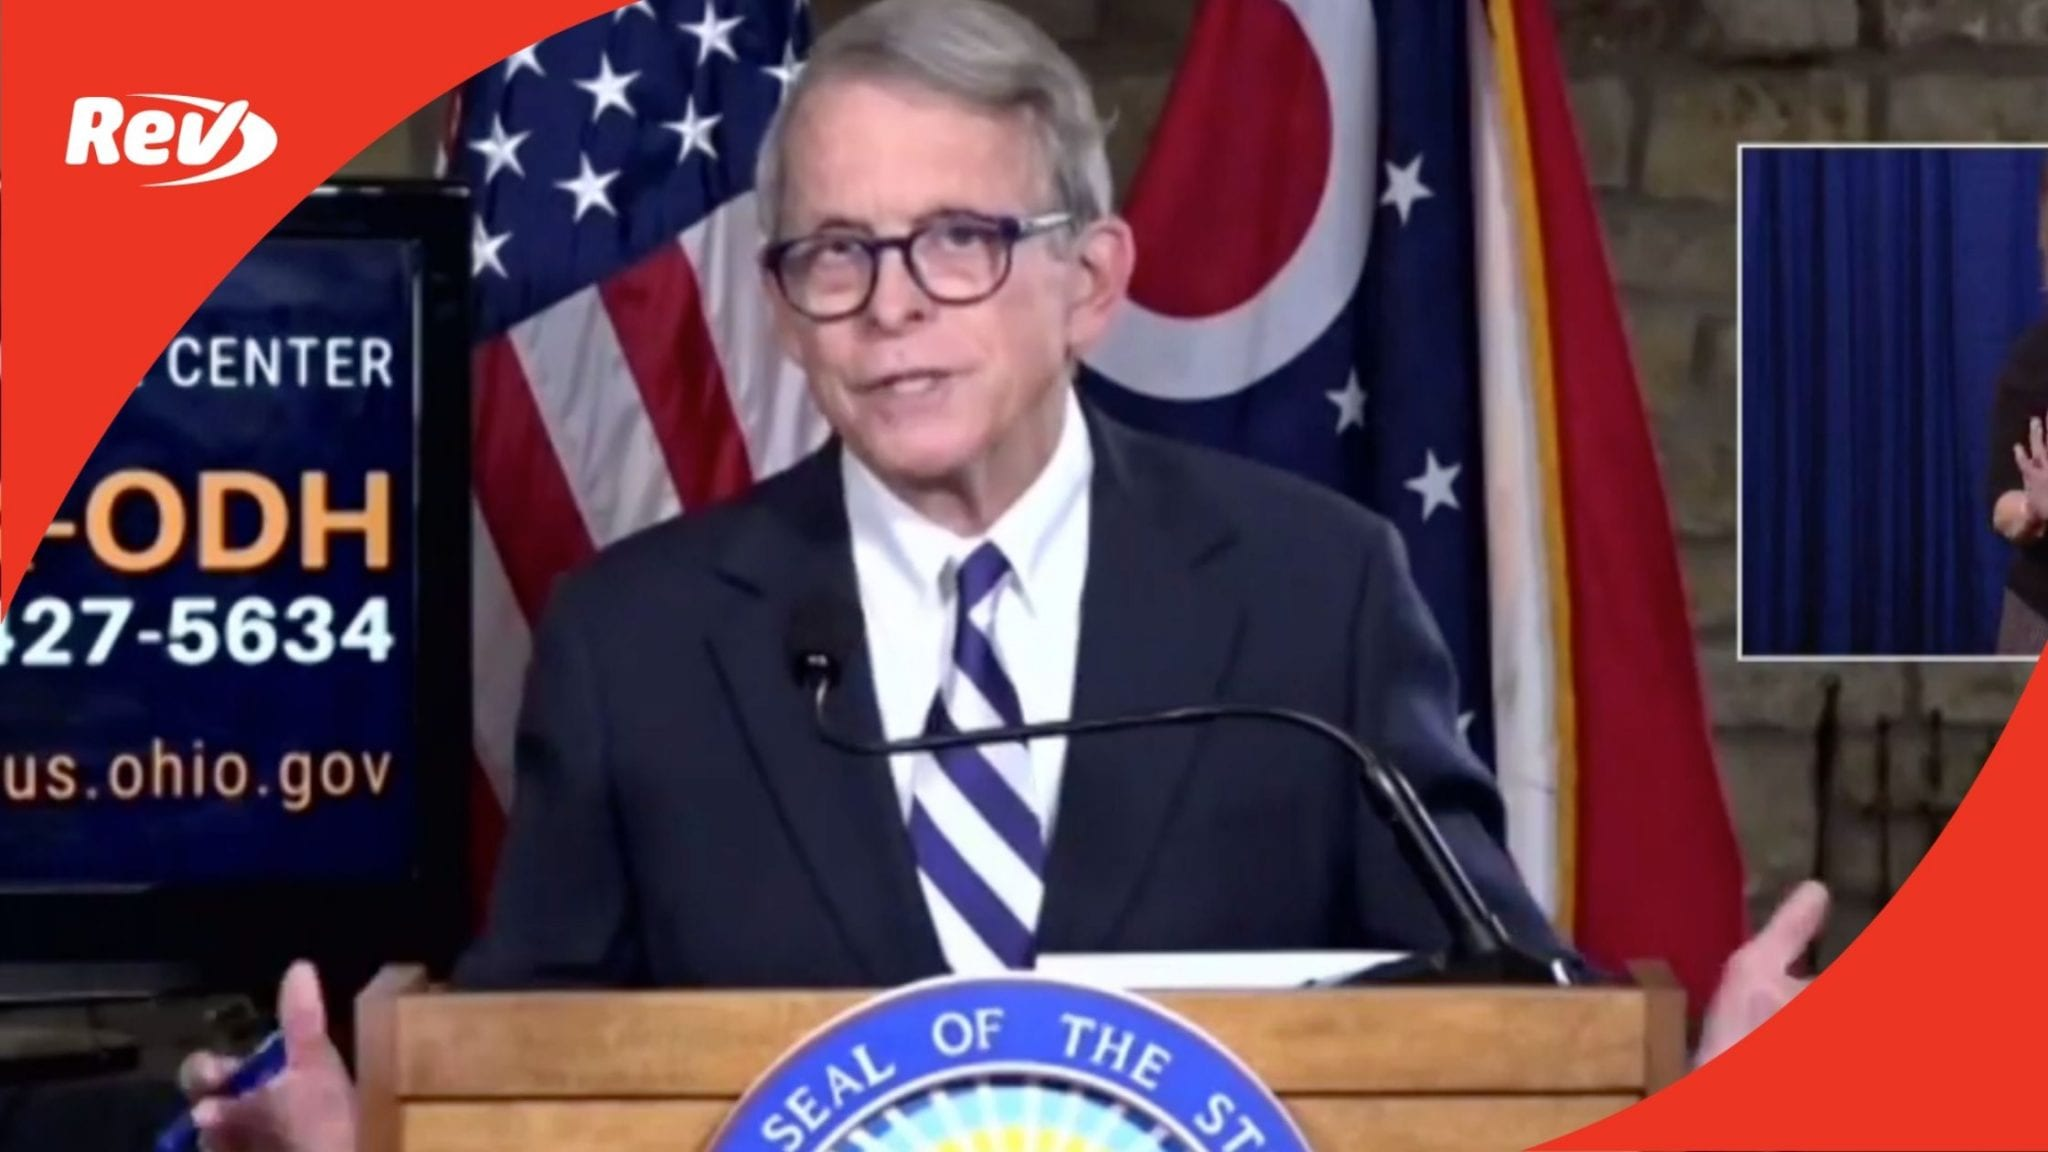 Ohio Gov. Mike DeWine COVID-19 Press Conference Transcript January 28